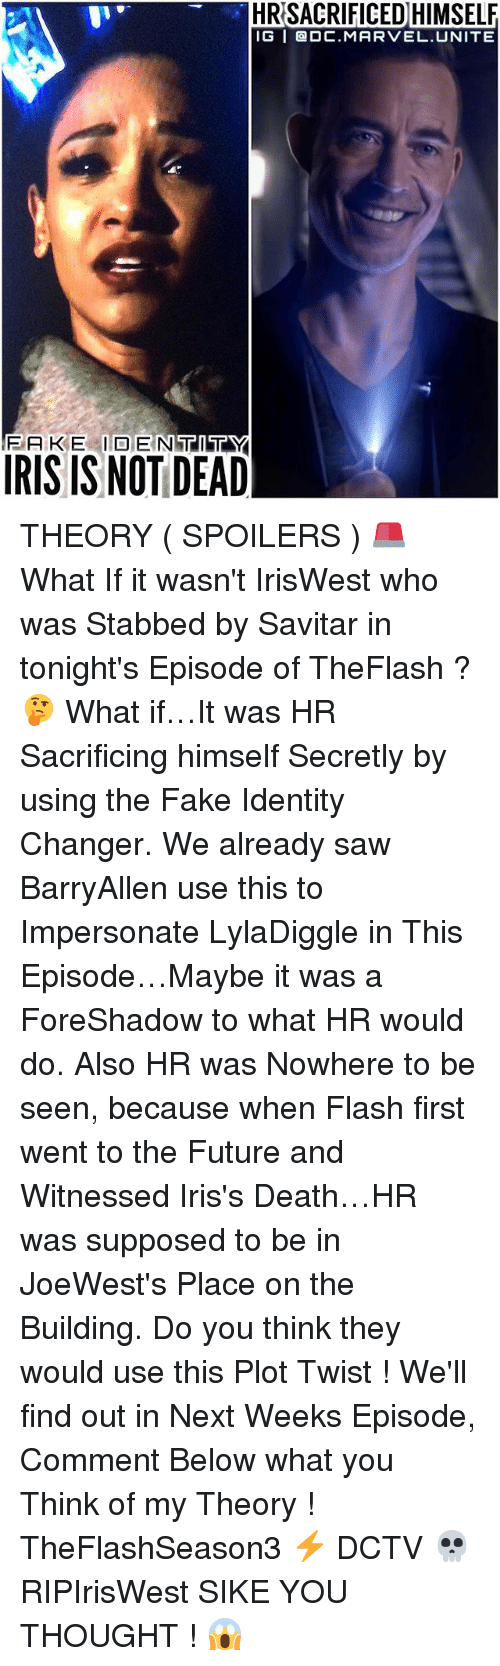 Fake, Future, and Memes: HRSACRIFICED HIMSELF  IG GDC MARVEL UNITE  IRIS IS NOT DEAD THEORY ( SPOILERS ) 🚨What If it wasn't IrisWest who was Stabbed by Savitar in tonight's Episode of TheFlash ? 🤔 What if…It was HR Sacrificing himself Secretly by using the Fake Identity Changer. We already saw BarryAllen use this to Impersonate LylaDiggle in This Episode…Maybe it was a ForeShadow to what HR would do. Also HR was Nowhere to be seen, because when Flash first went to the Future and Witnessed Iris's Death…HR was supposed to be in JoeWest's Place on the Building. Do you think they would use this Plot Twist ! We'll find out in Next Weeks Episode, Comment Below what you Think of my Theory ! TheFlashSeason3 ⚡️ DCTV 💀 RIPIrisWest SIKE YOU THOUGHT ! 😱